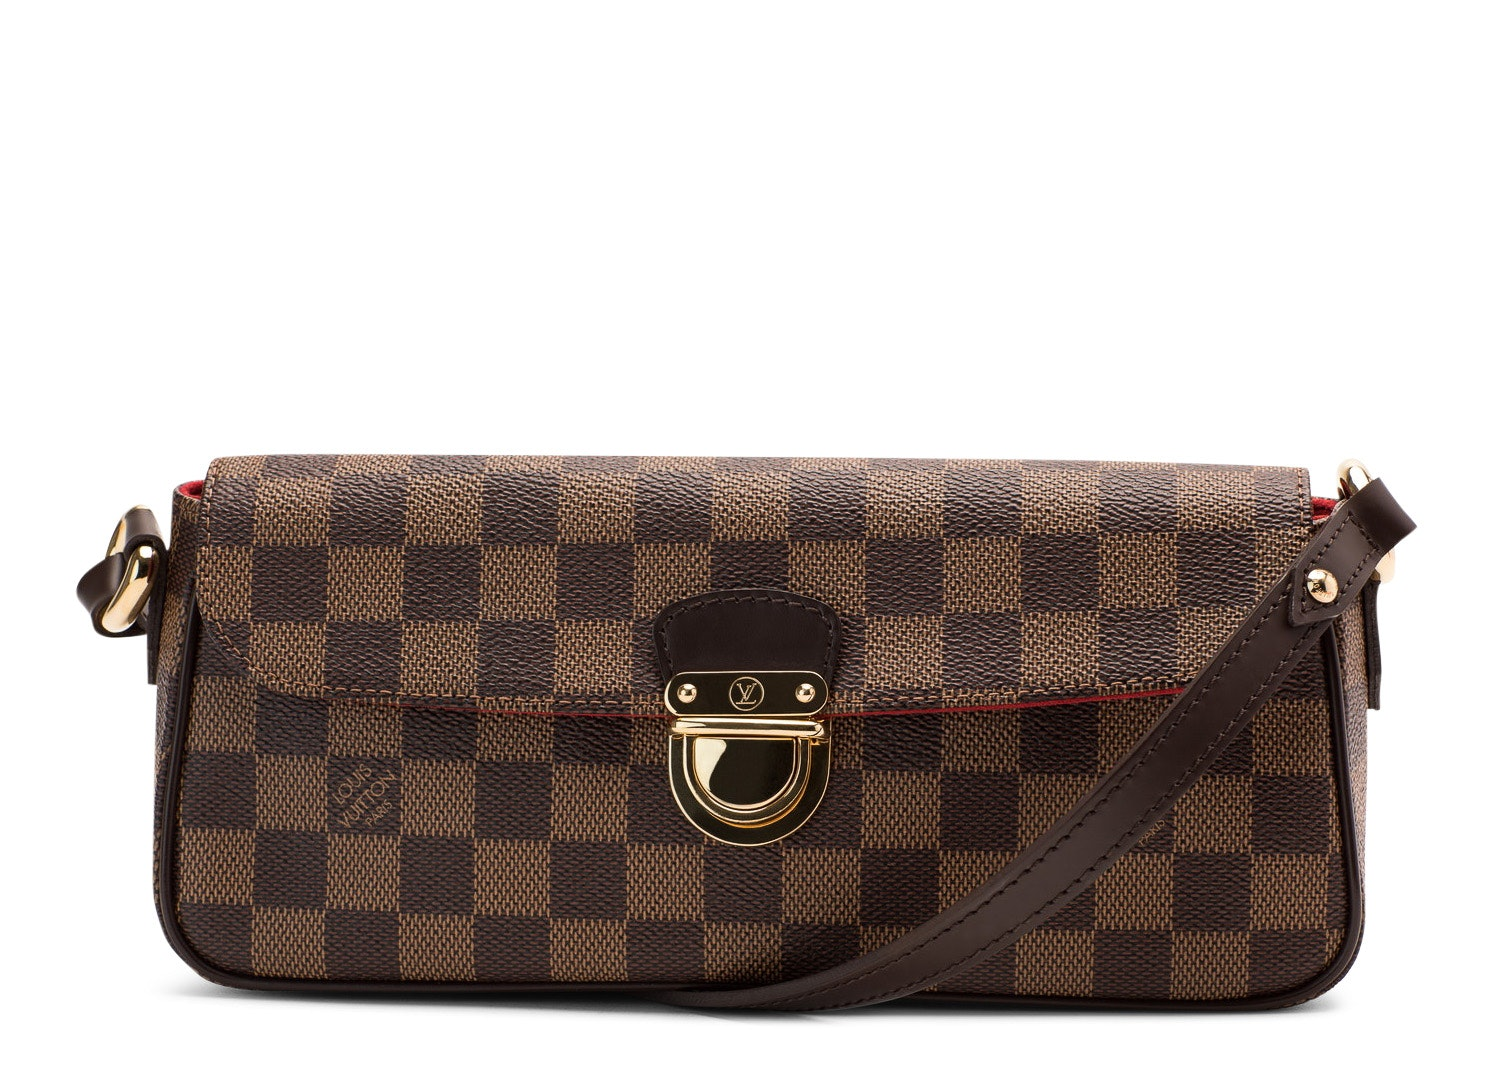 Louis Vuitton Ravello Damier Ebene PM Brown